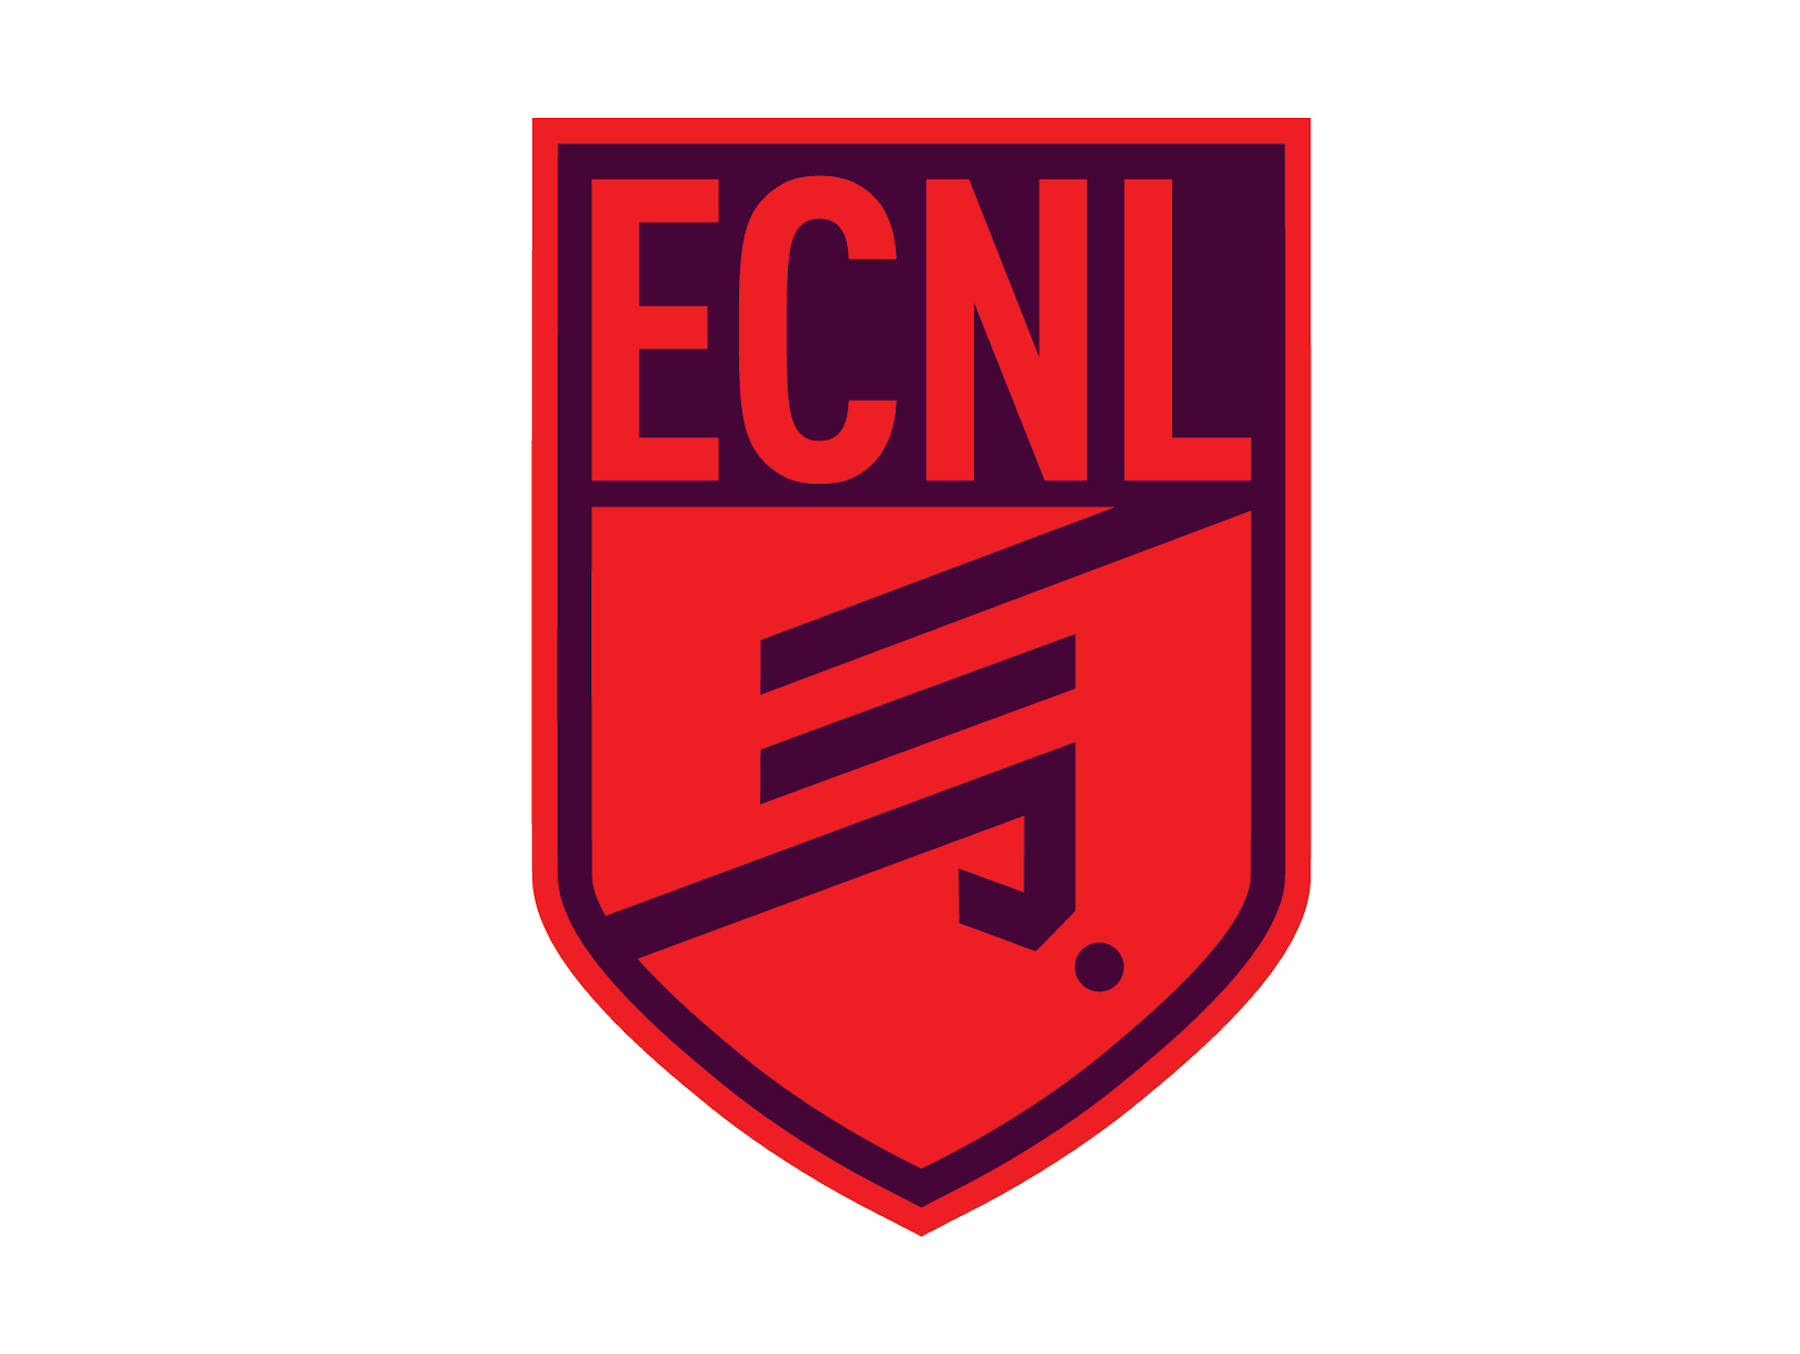 ECNL_Girls_Primary_Badge with White_Outline